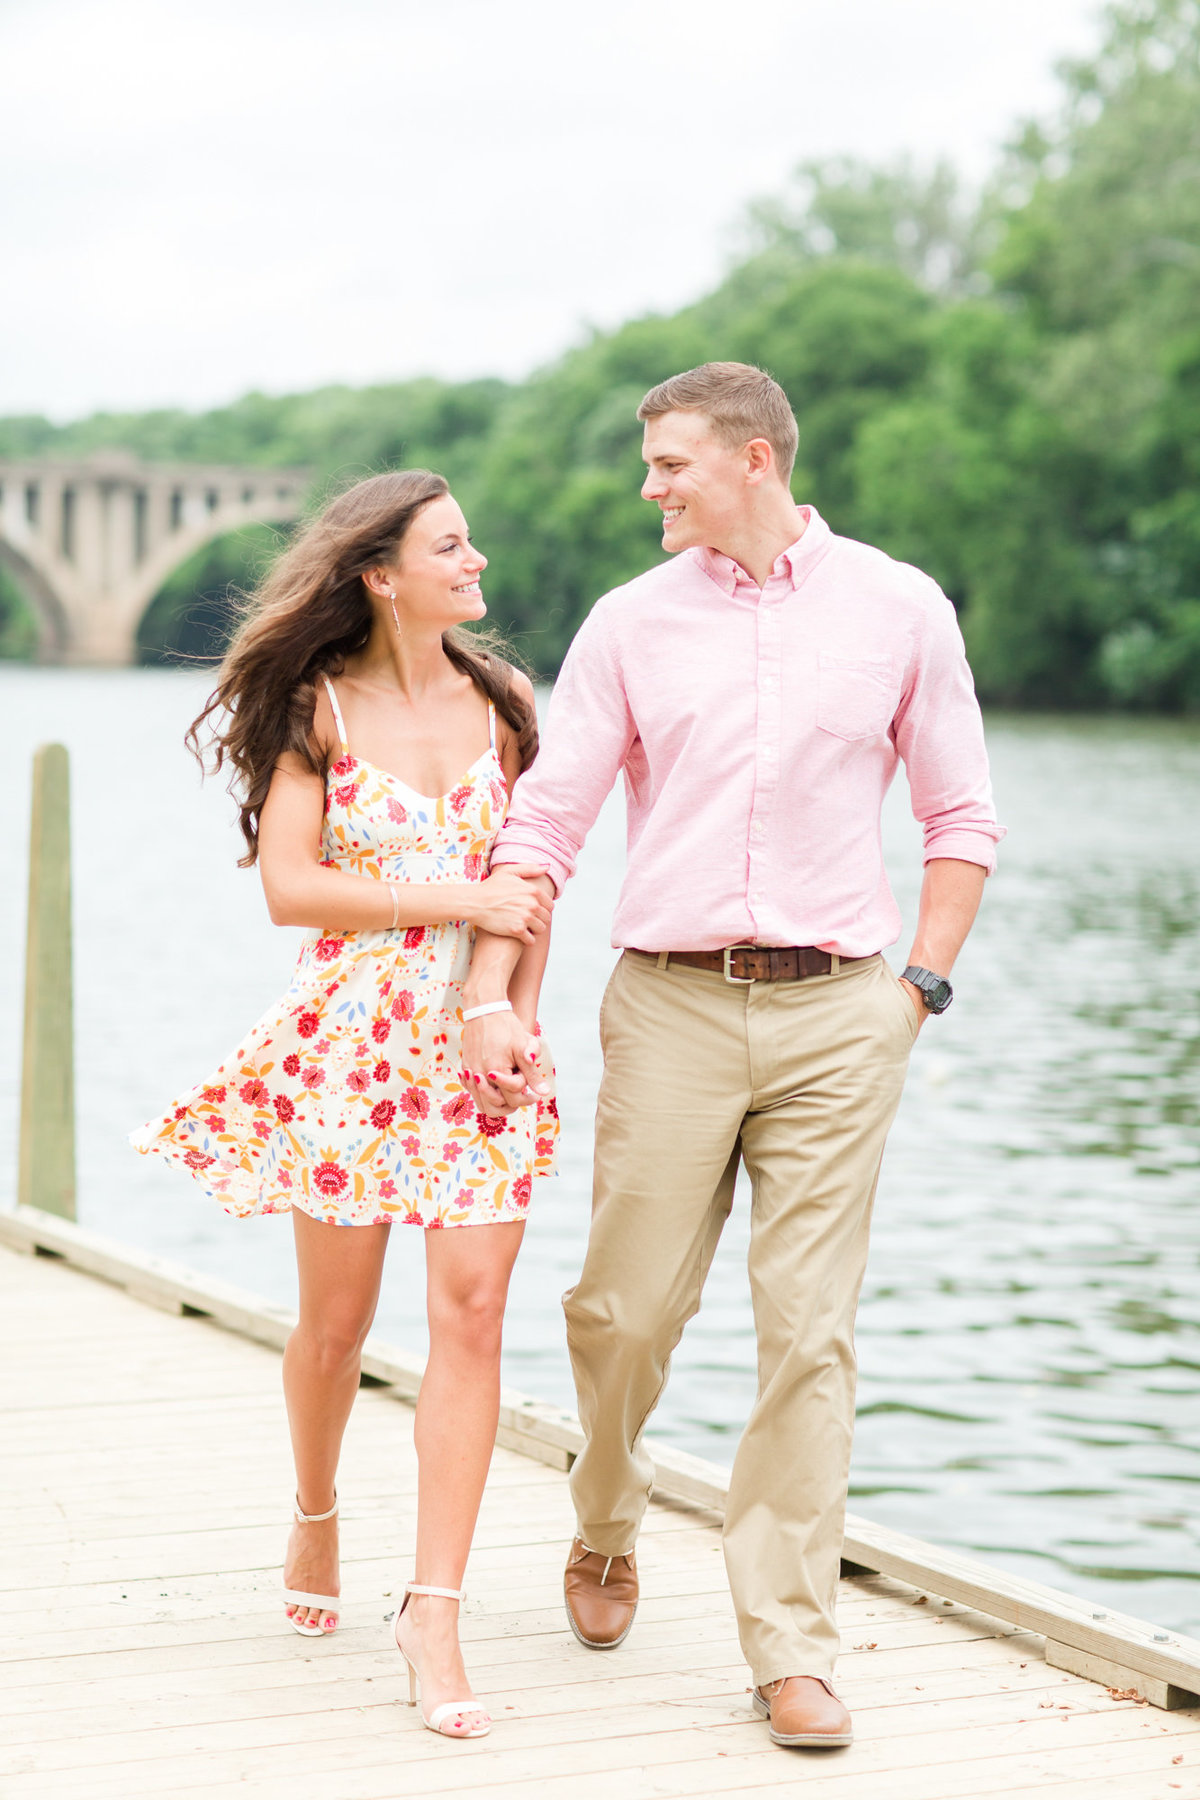 Courtney Morgan Photography Fredericksburg Virginia Washington DC Wedding Engagement Portrait Anniversary Photographer16